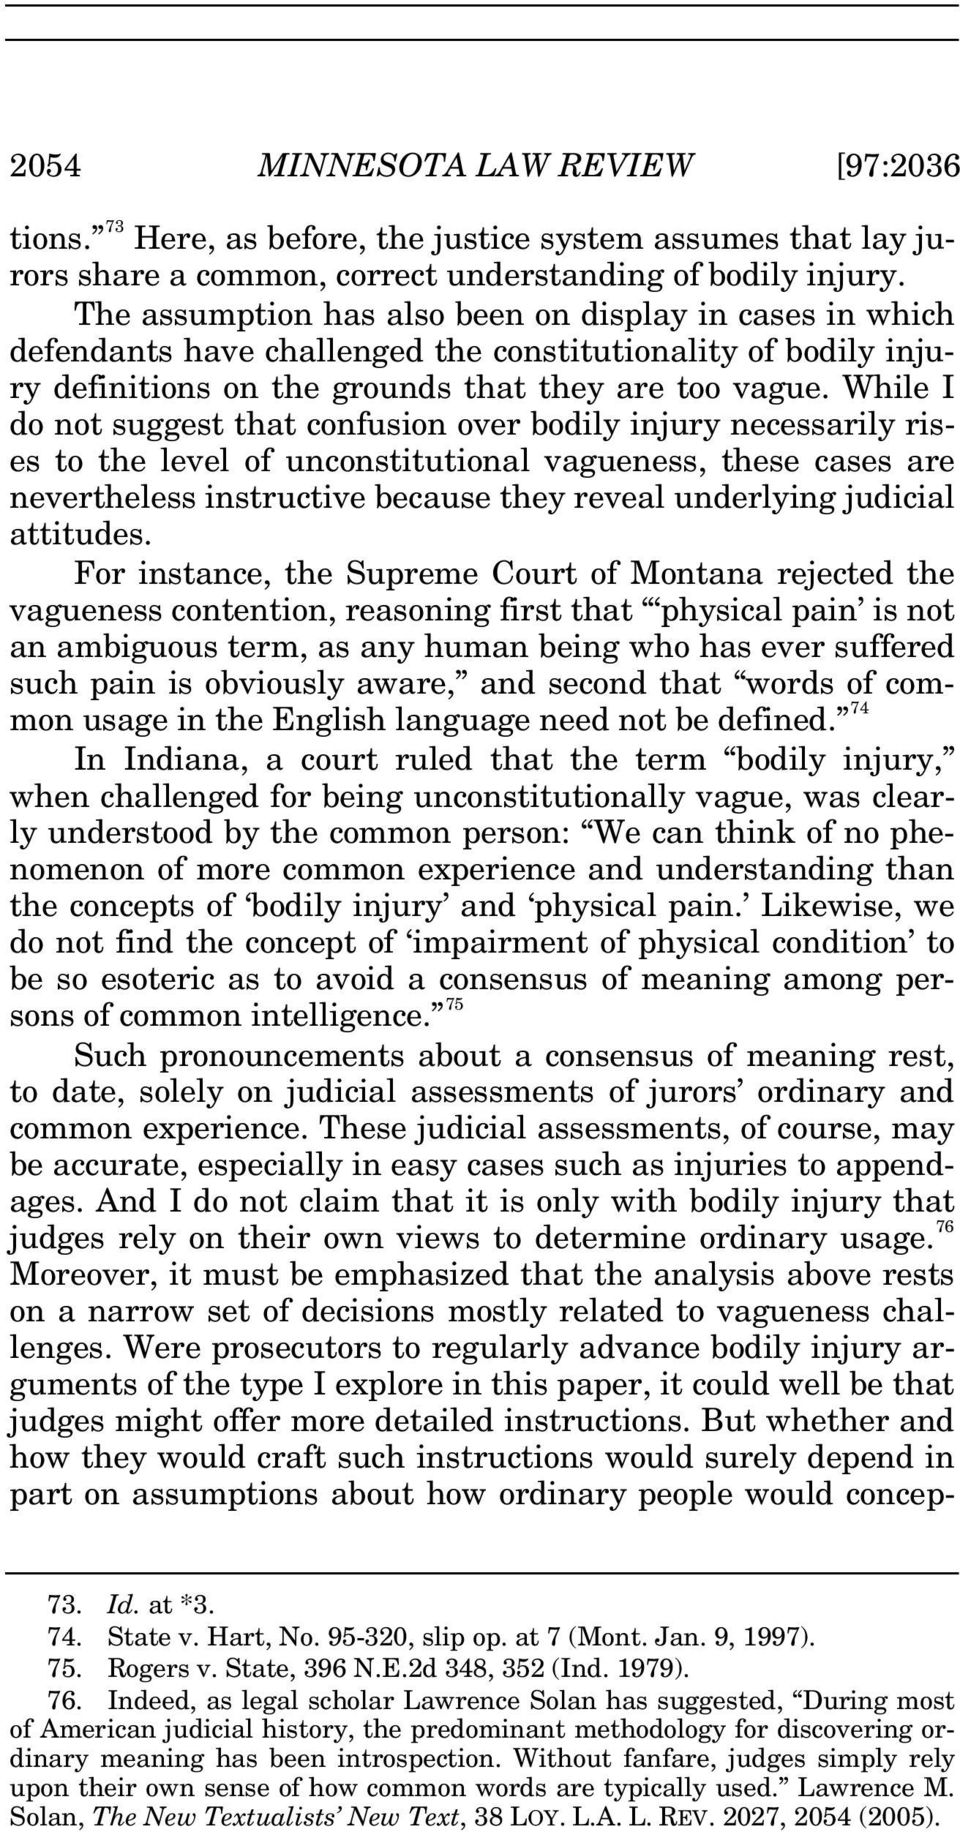 While I do not suggest that confusion over bodily injury necessarily rises to the level of unconstitutional vagueness, these cases are nevertheless instructive because they reveal underlying judicial